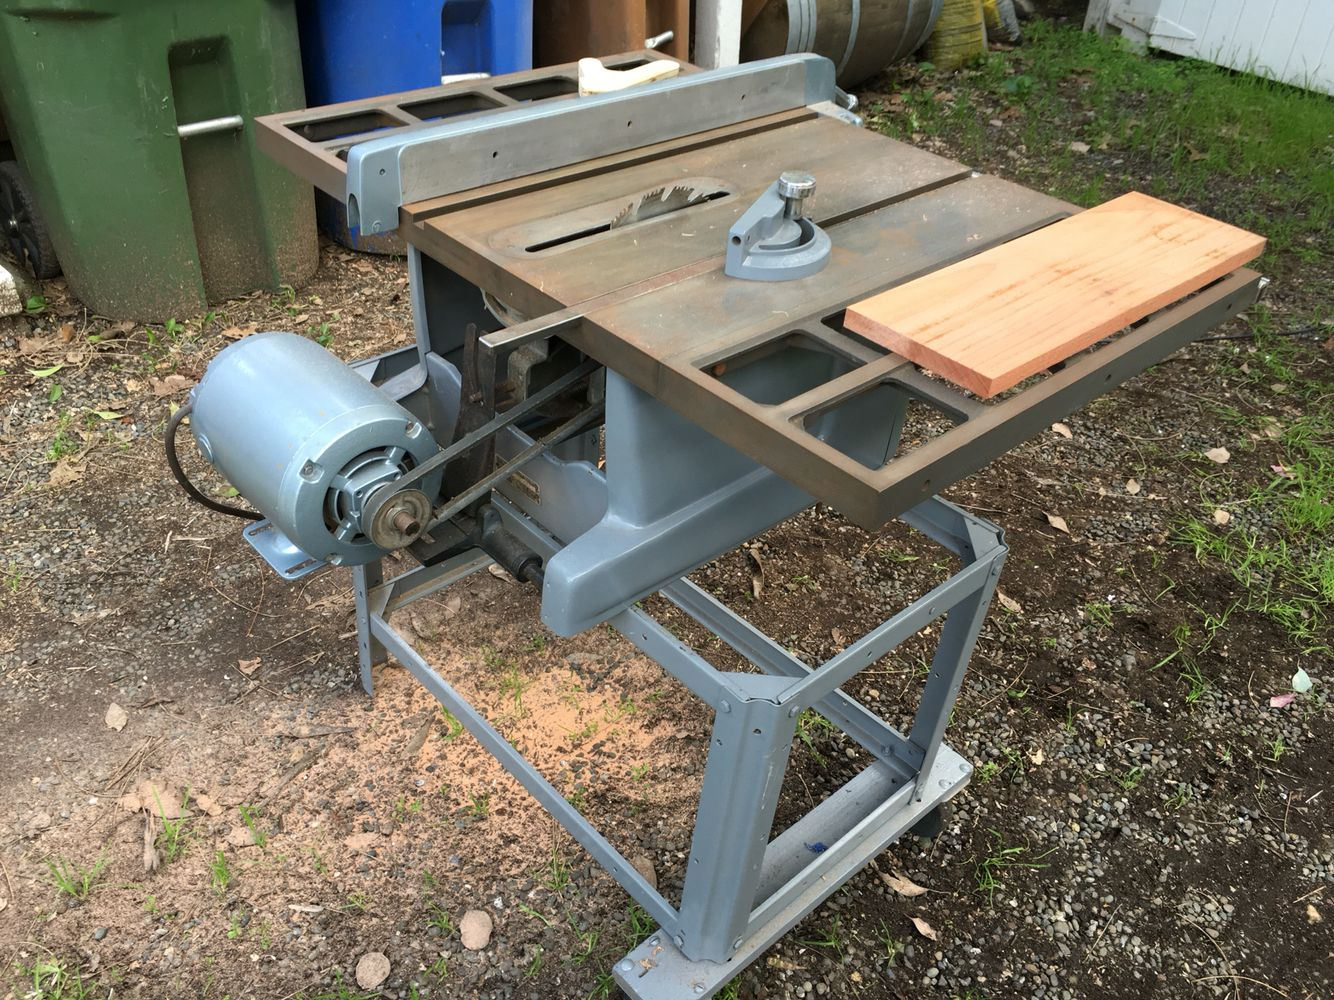 My 1950s Craftsman Table Saw So Much Fun To Use For Making